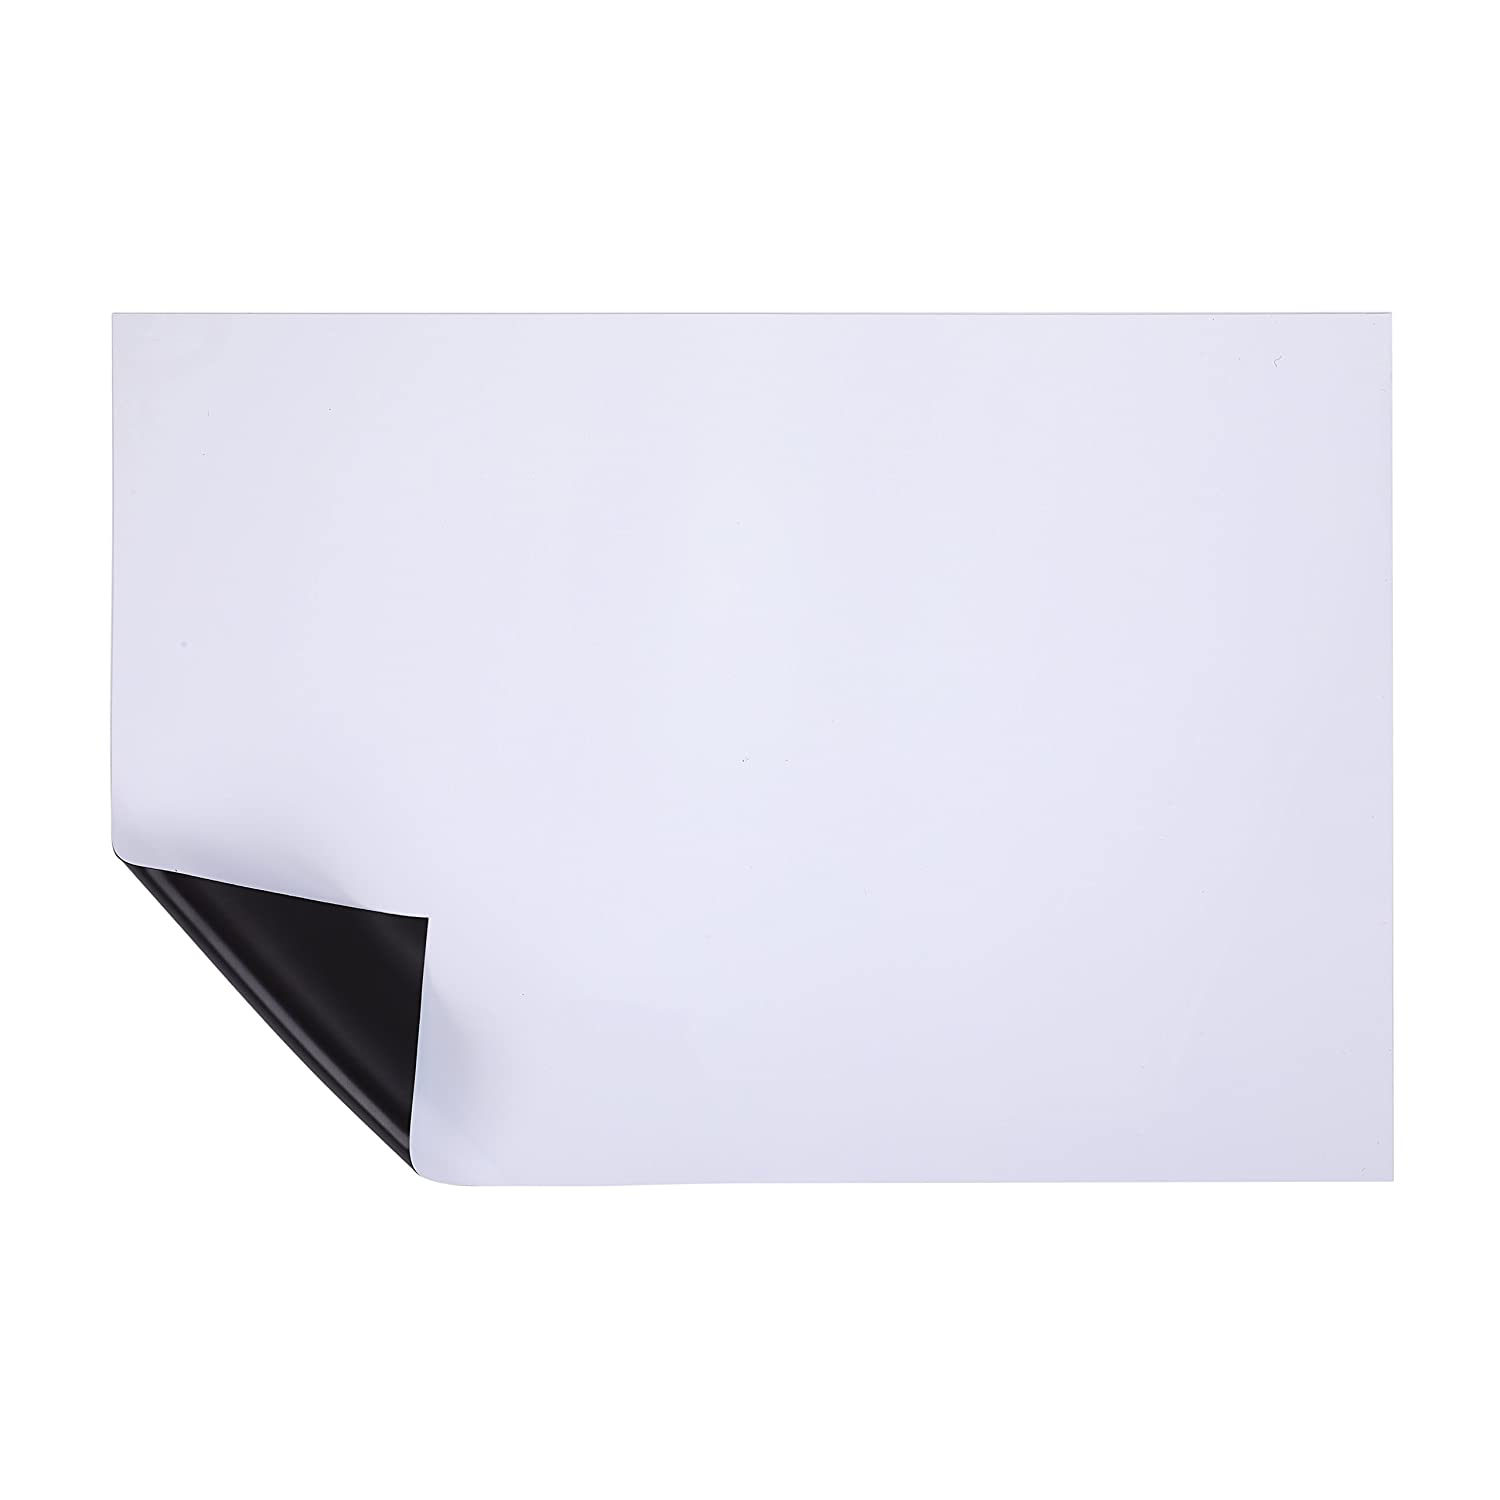 RIANCY Removable Soft Whiteboard, Magnetic Dry Erase Whiteboard Sheets,White Board Stickers, Message Board for Kids, Office, School & Home (23.6 X 35.4 in) RIANCY Inc